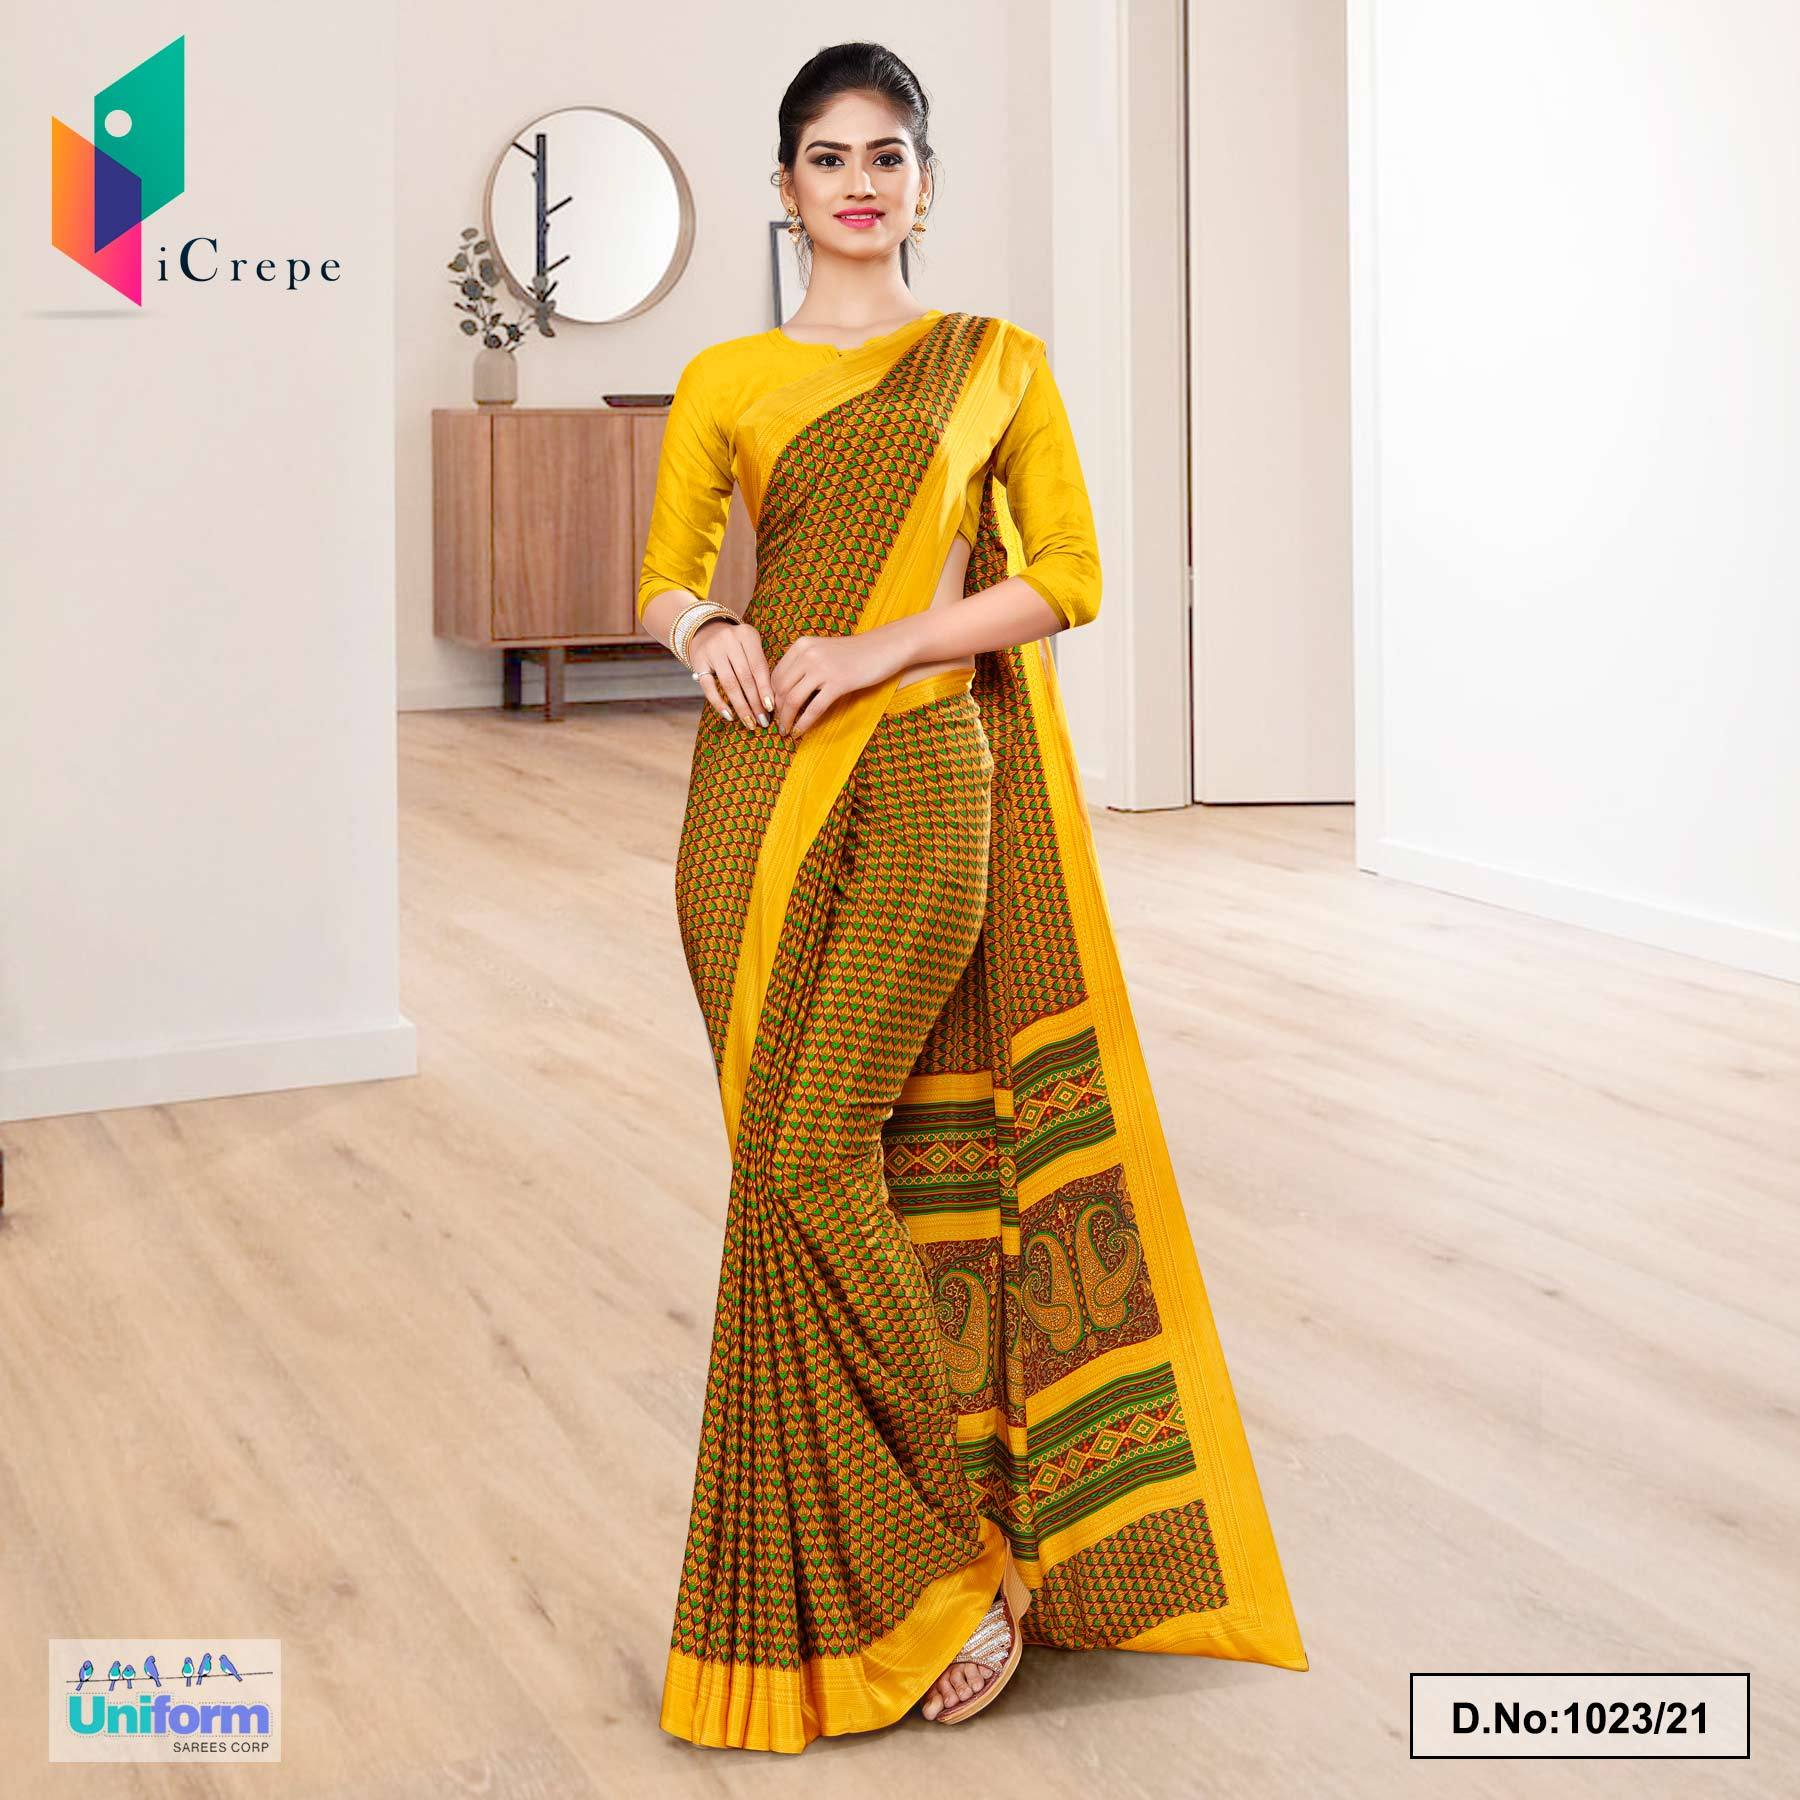 Gold Yellow Small Print Premium Italian Silk Crepe Saree for Institution Uniform Sarees